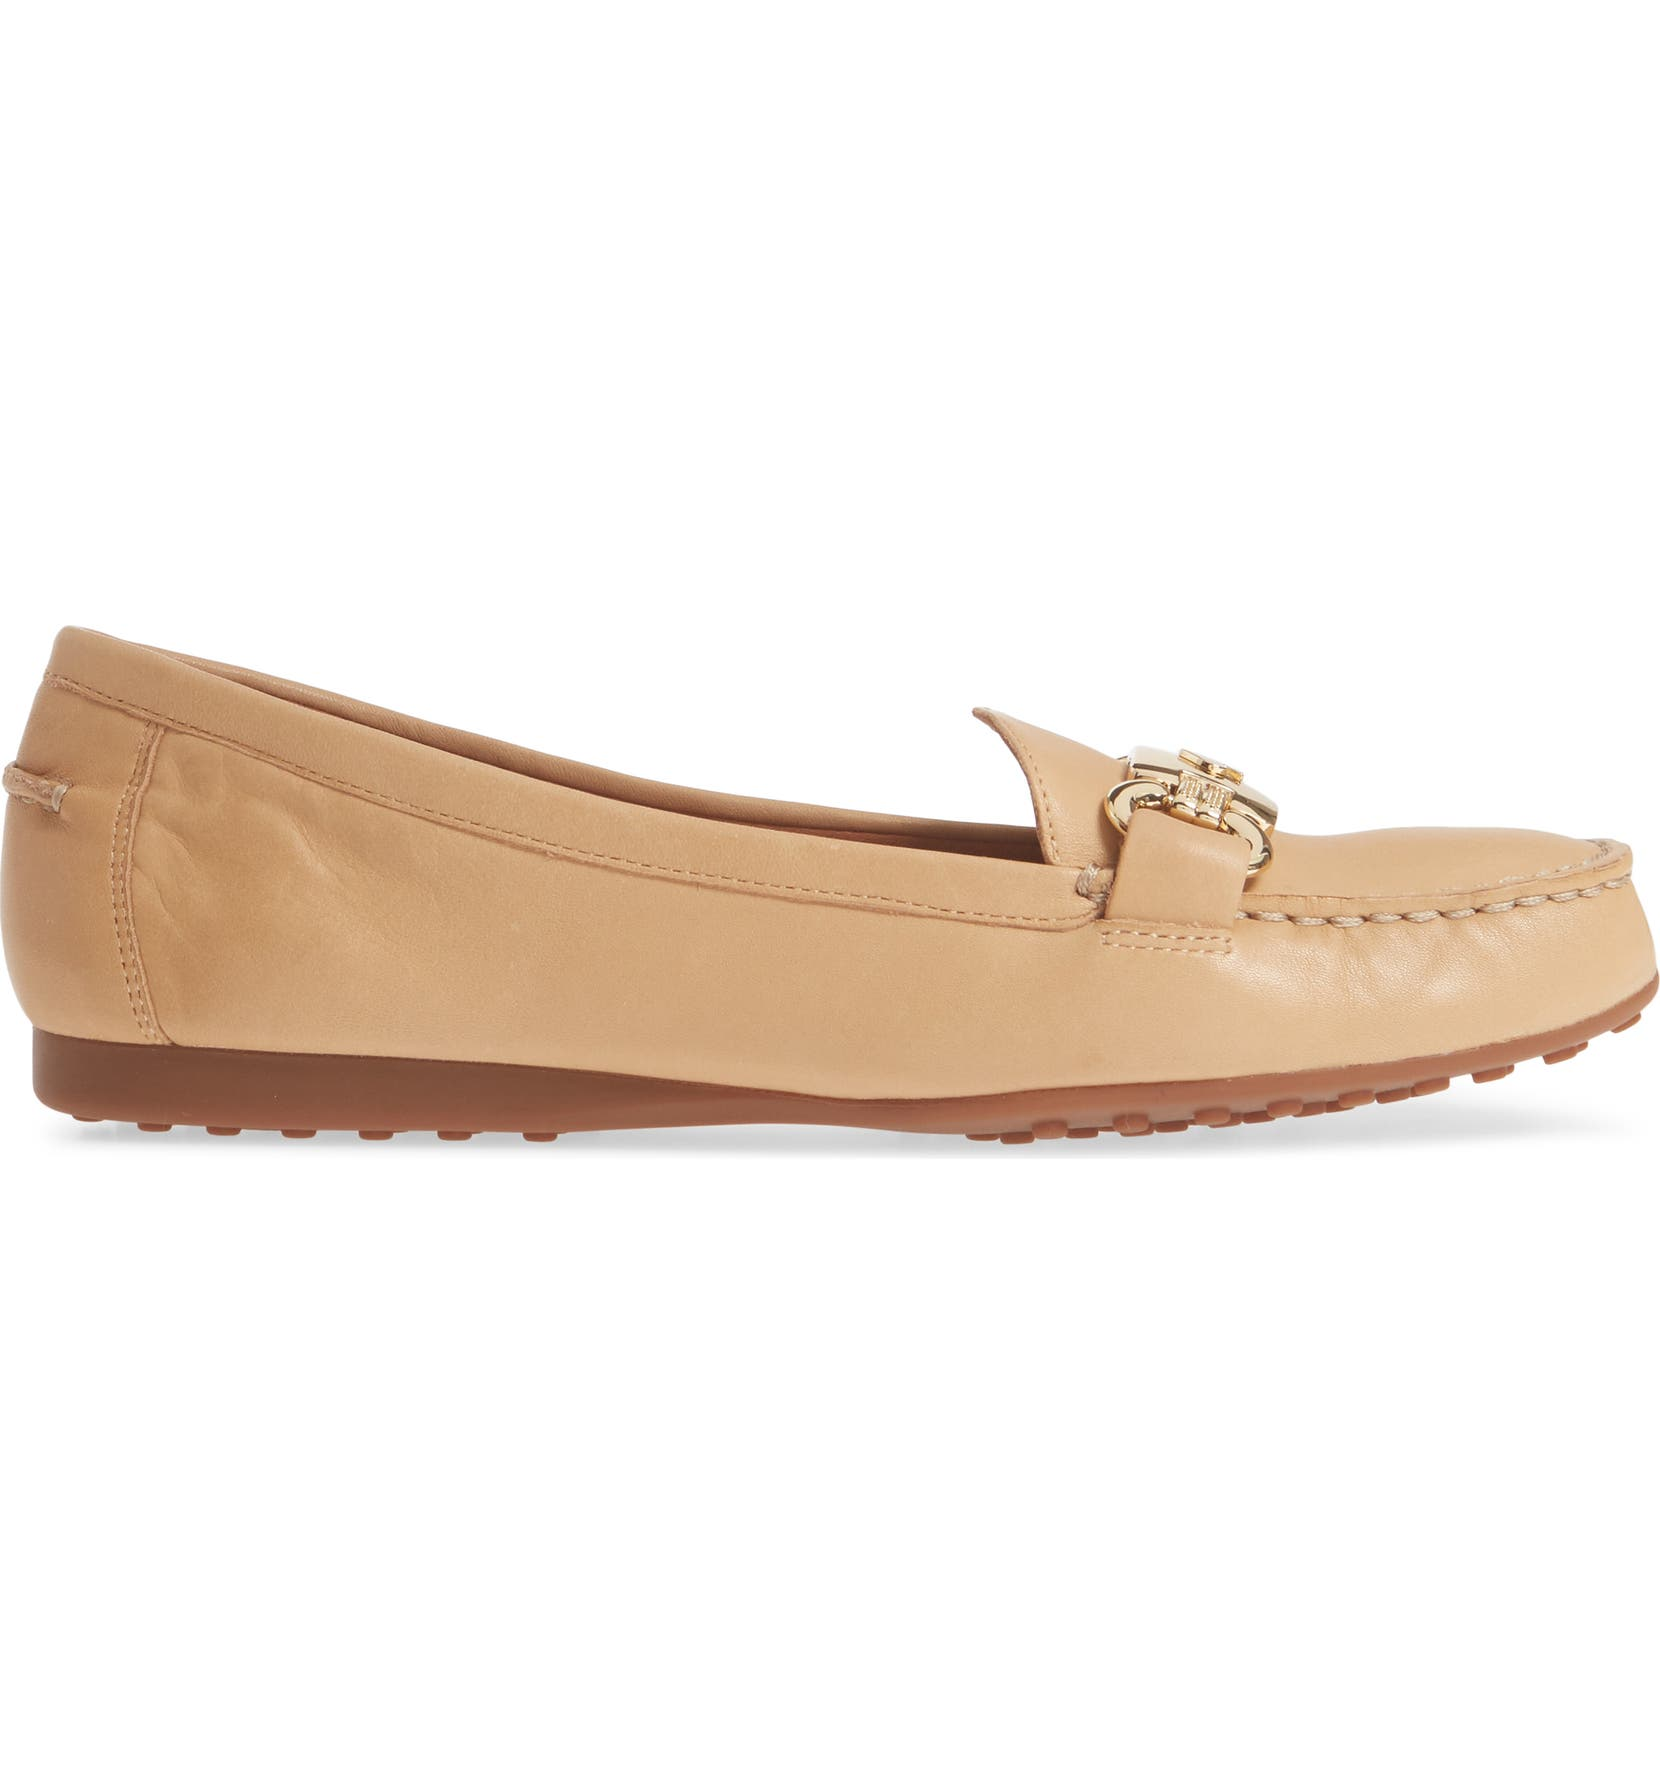 3744b339bfd kate spade new york carson loafer (Women)